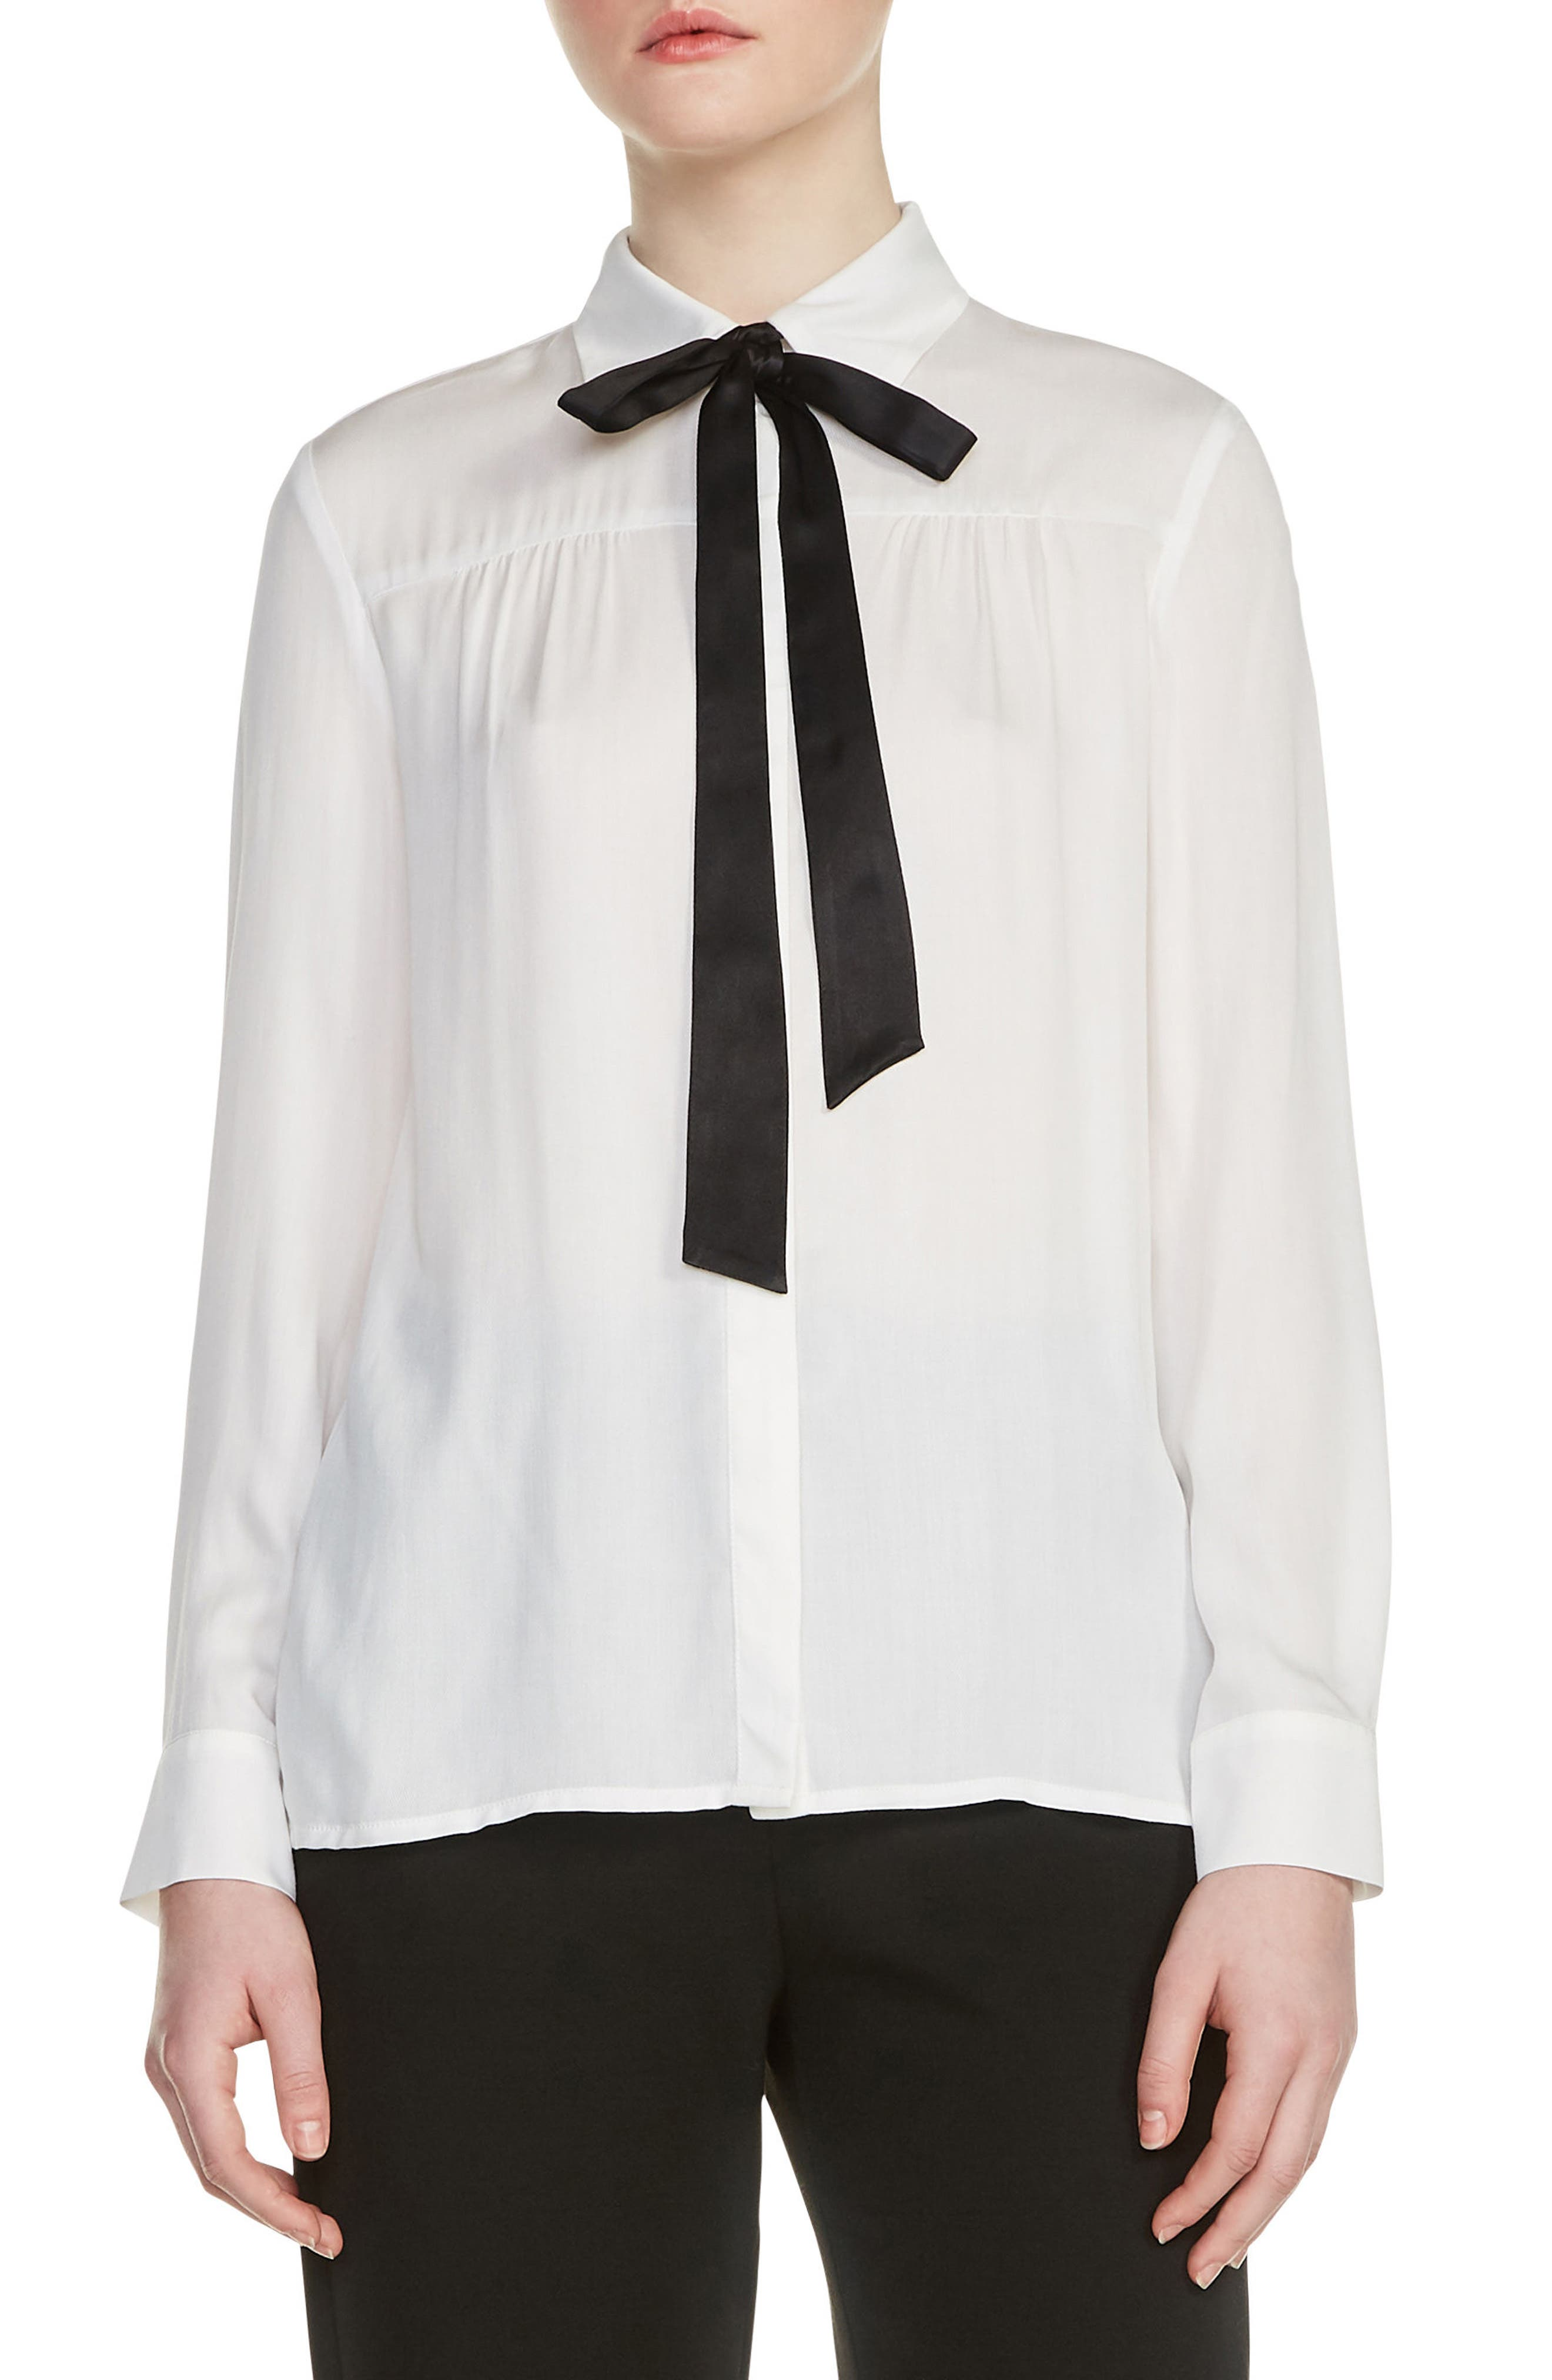 Caryota Tie Neck Blouse,                         Main,                         color, 100